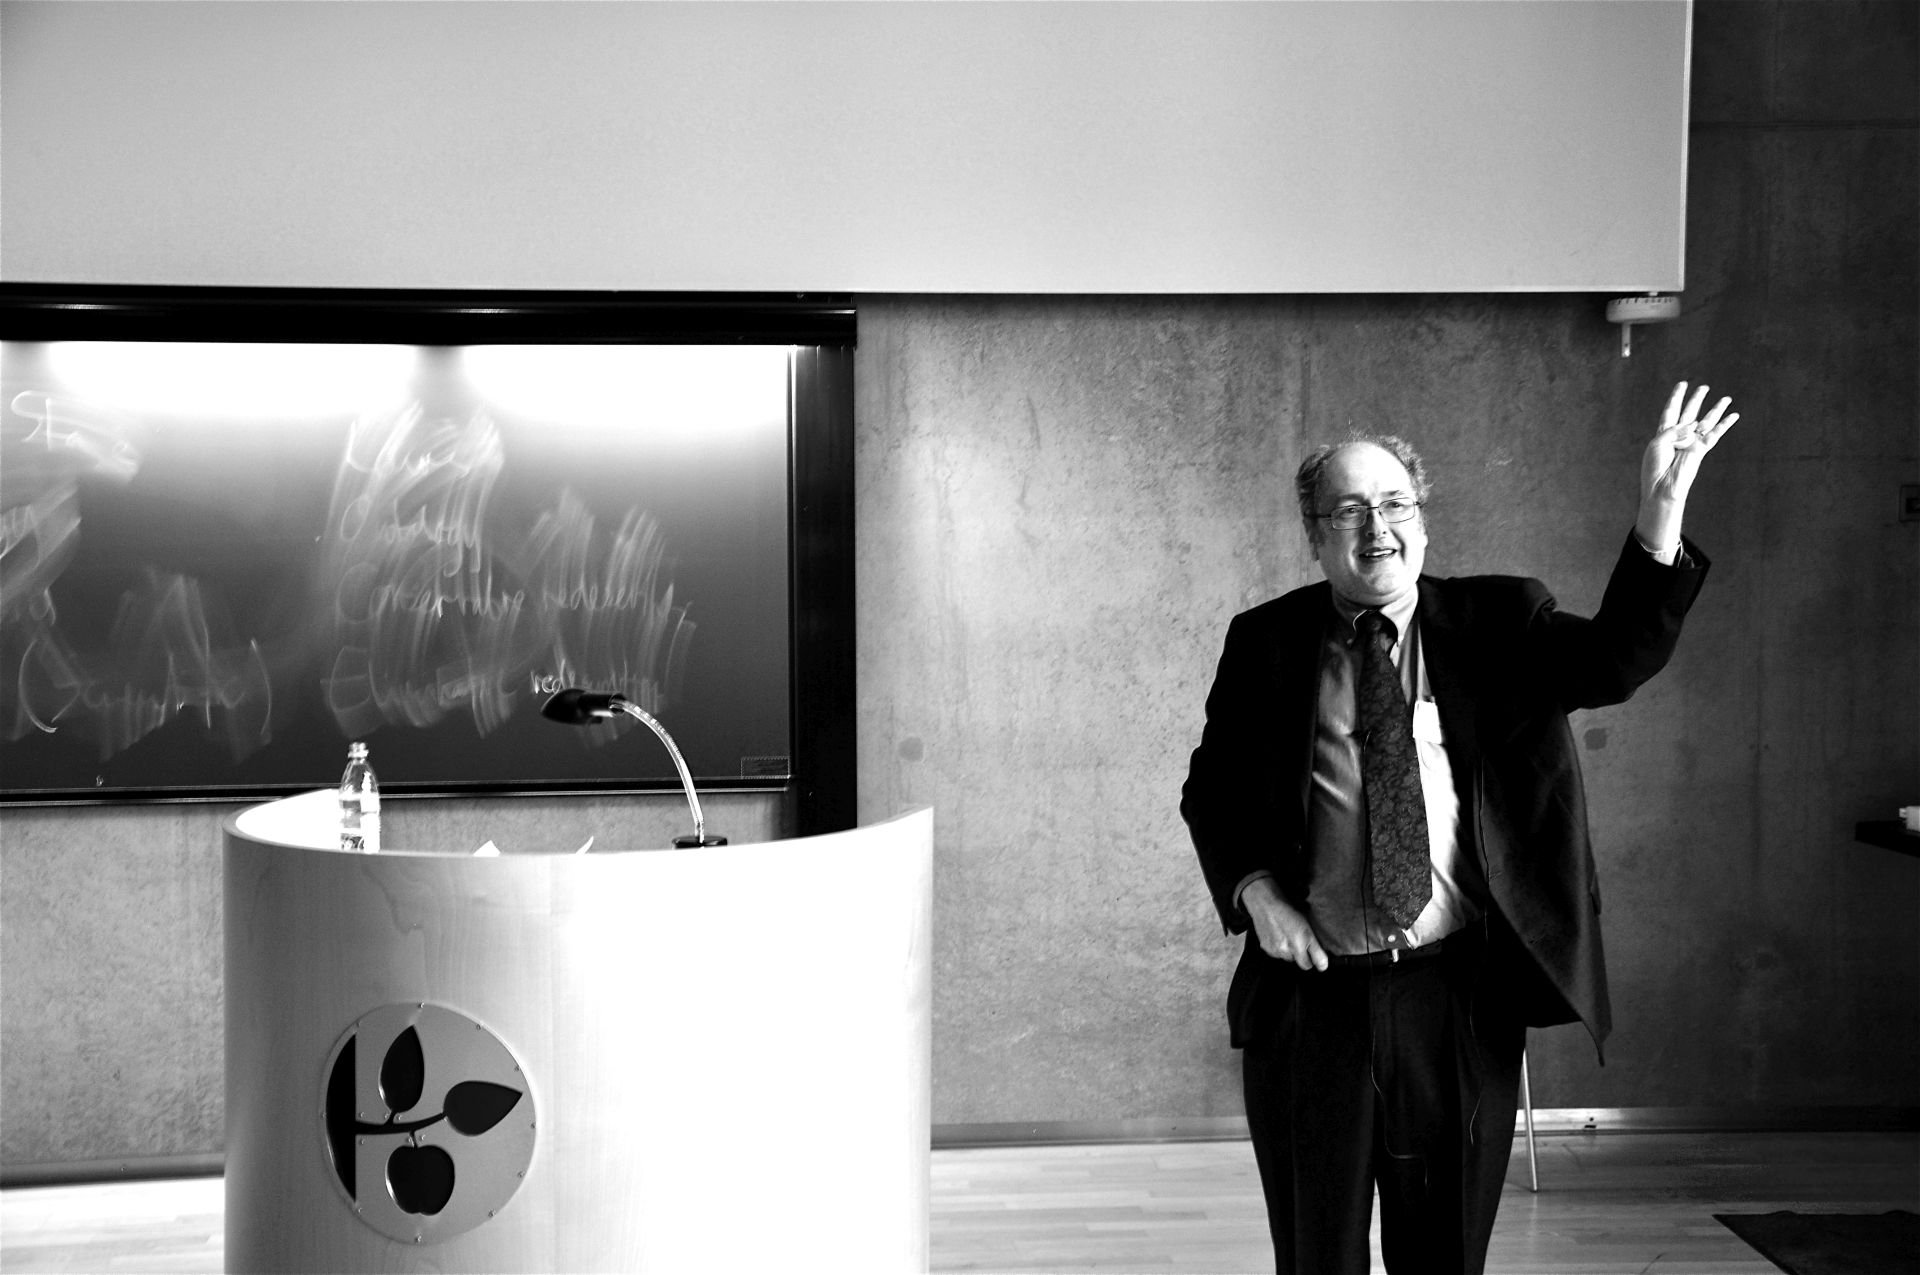 Brian Leiter presenting at the Danish Philosophical Association, Odense, March 2013